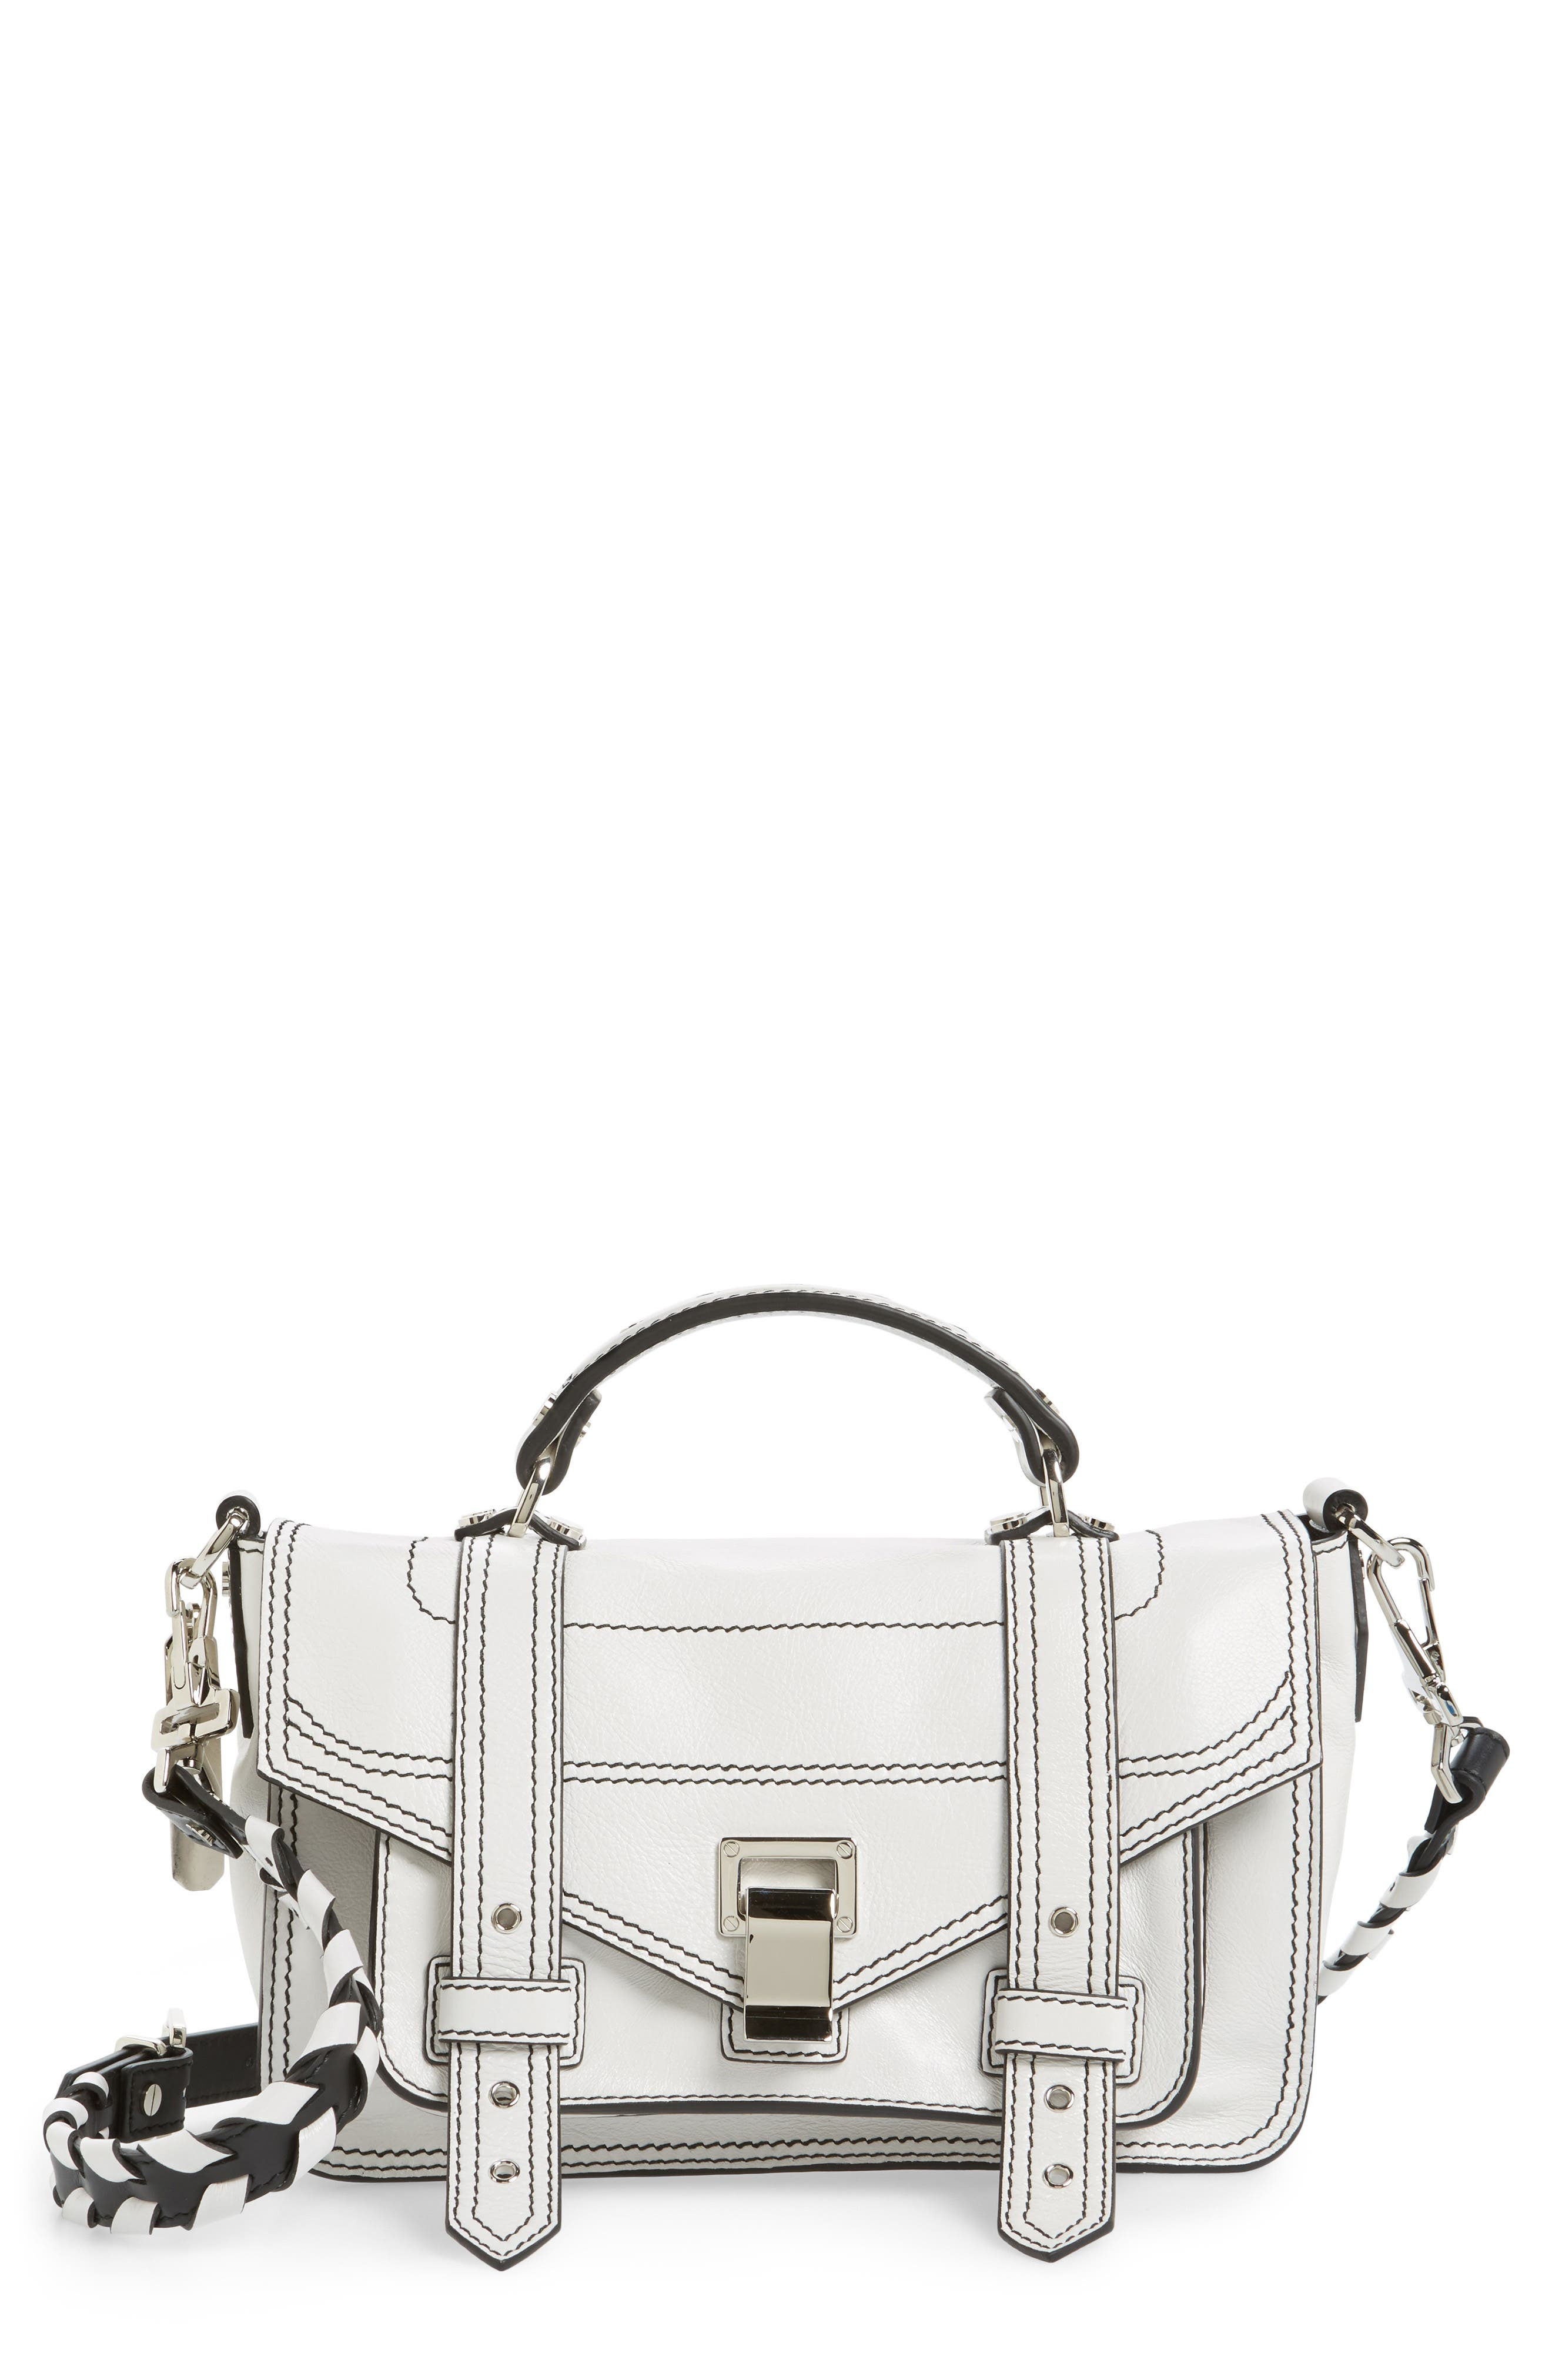 Proenza Schouler Tiny PS1 Calfskin Leather Satchel with Novelty Shoulder/Crossbody Strap